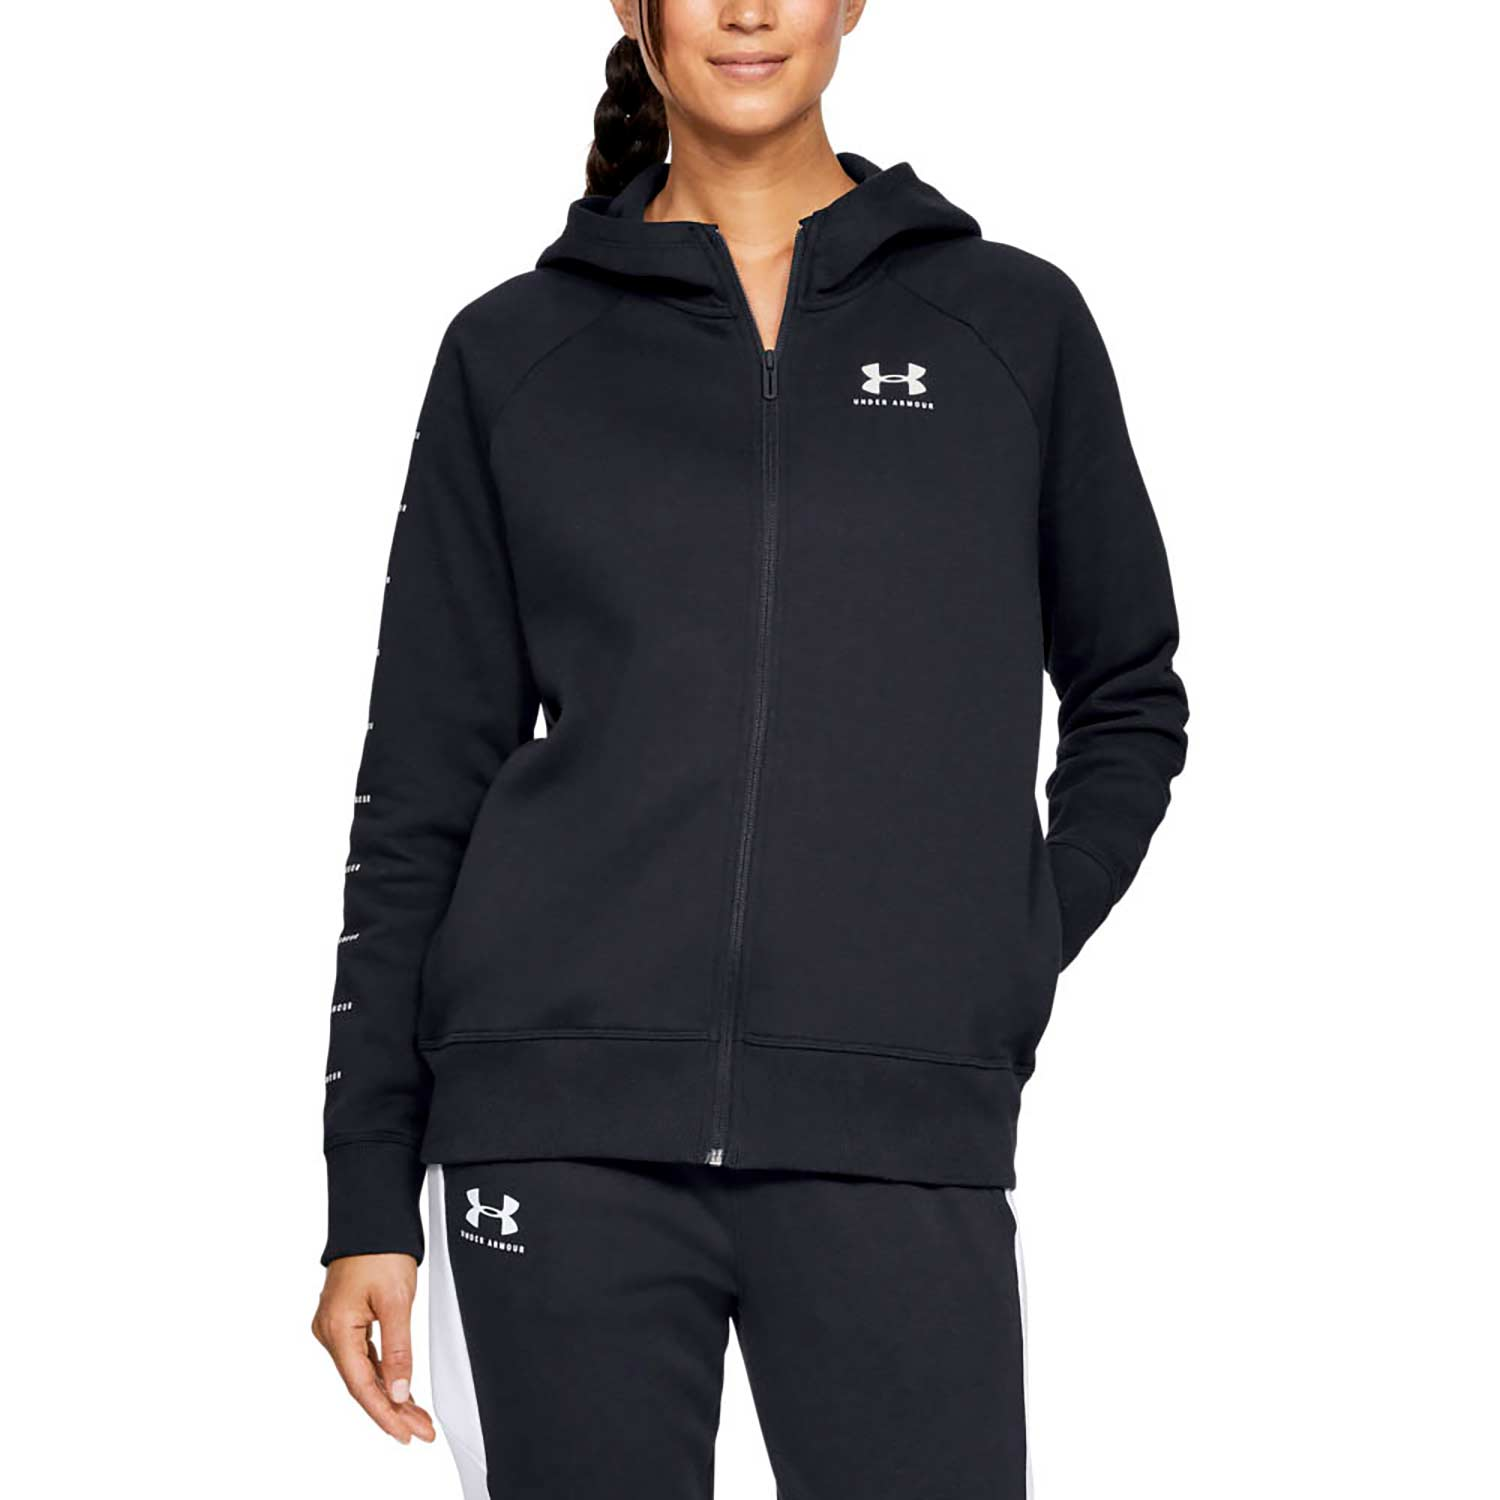 Under Armour Women's Rival Fleece Sportstyle Full-Zip Hoodie